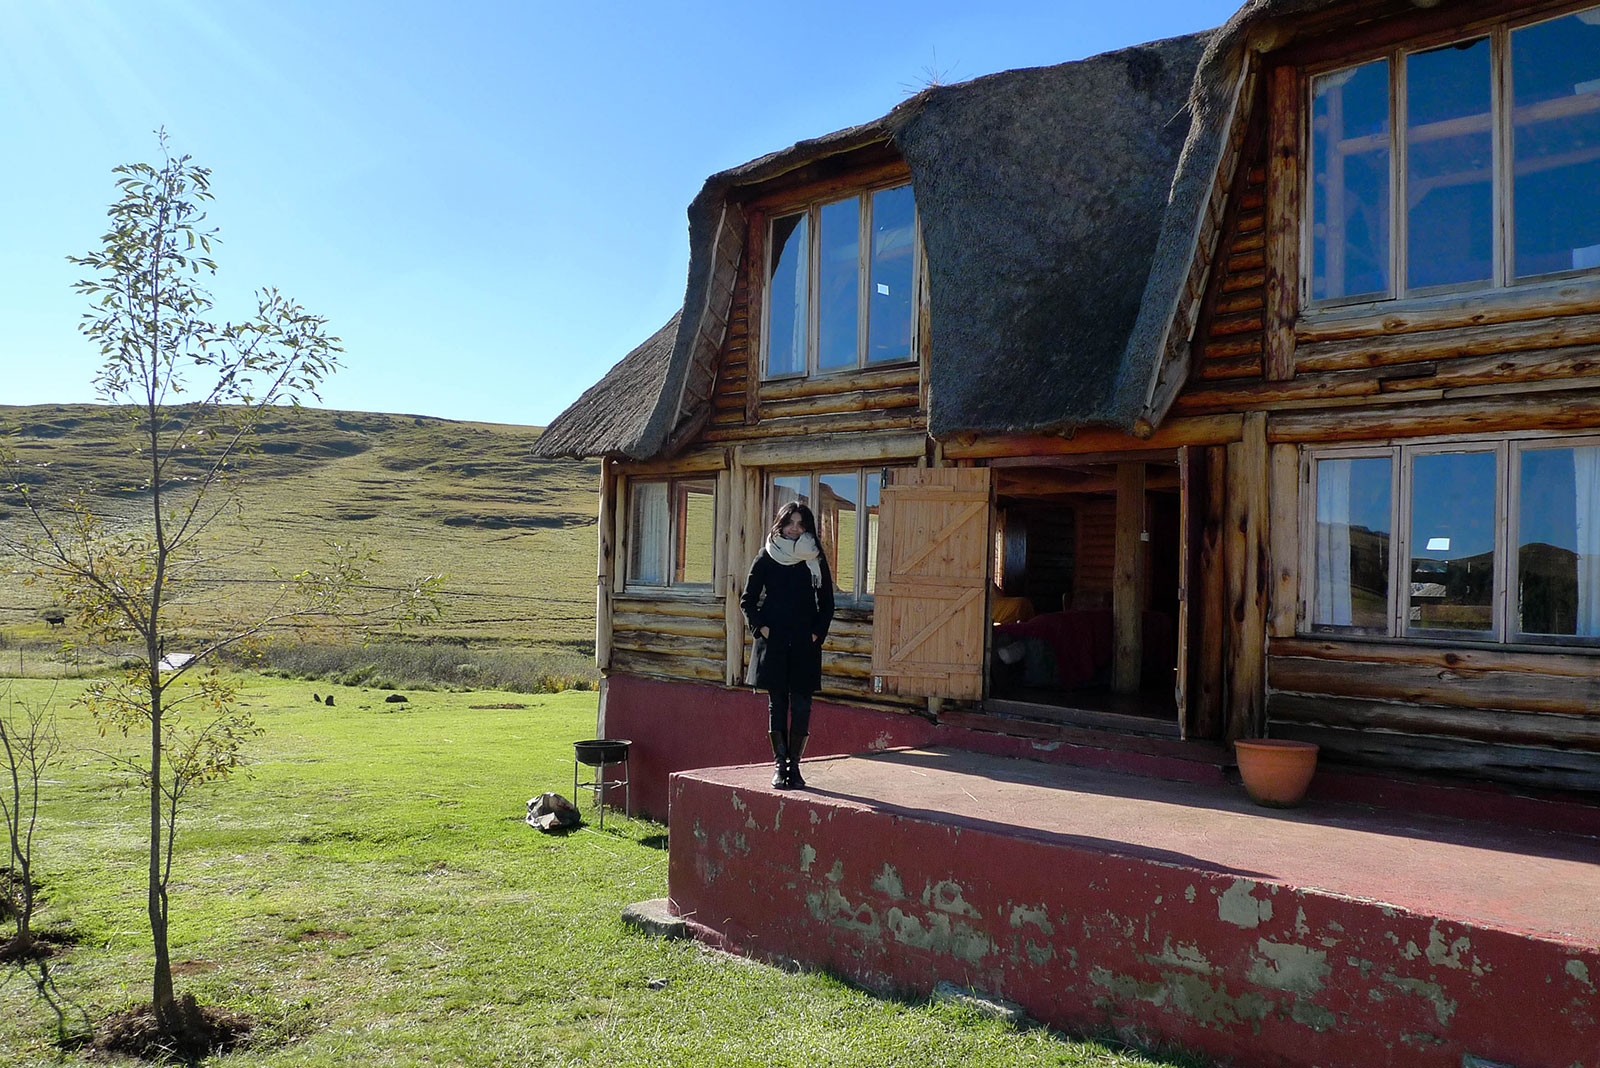 the lodge we spent the night in, in the Drakensberg